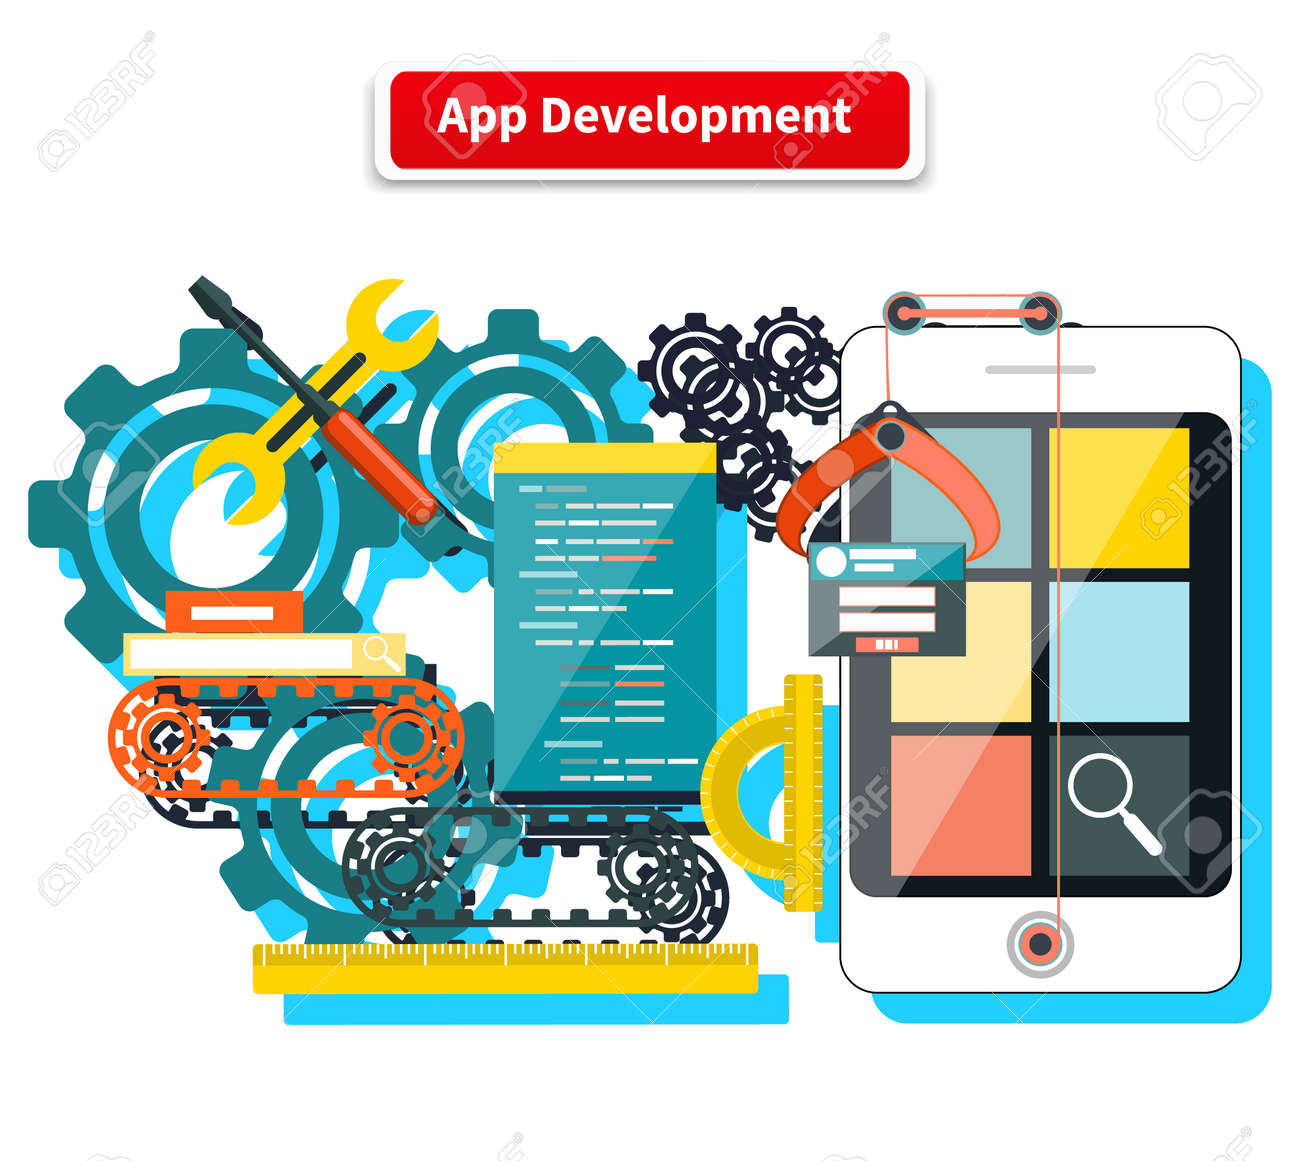 Concept for app development with smartphone, tools, programing